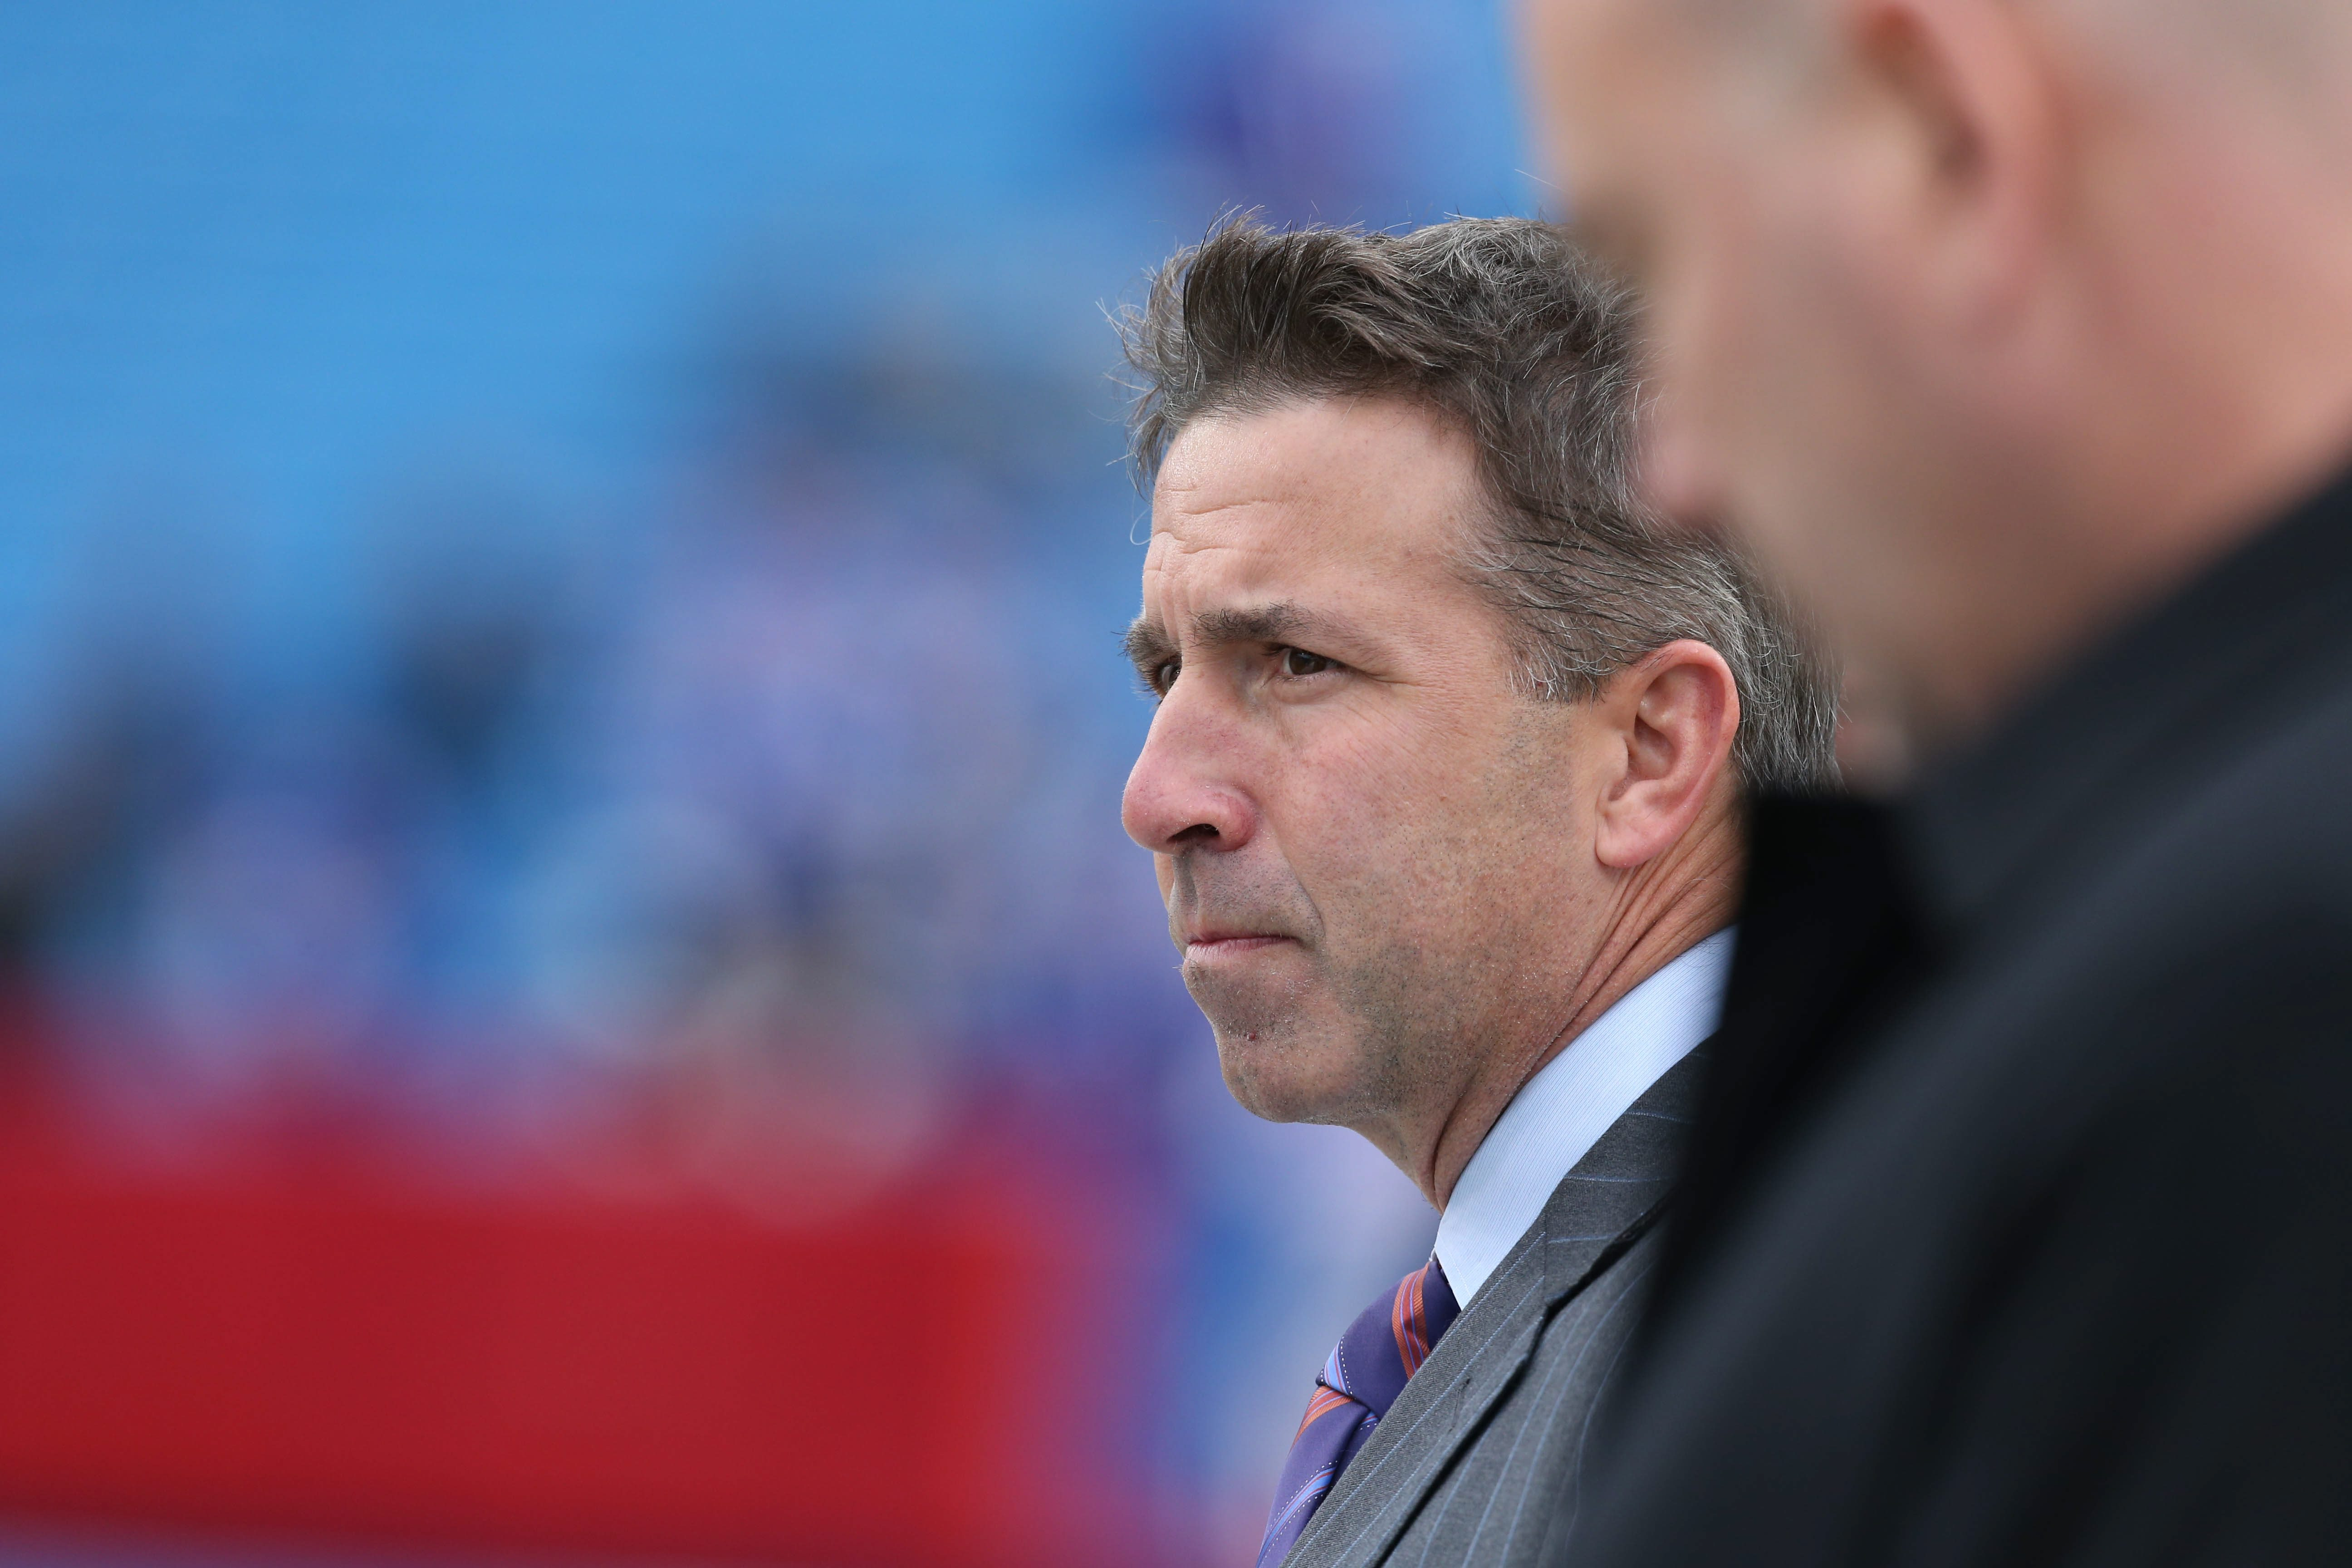 Buffalo Bills president Russ Brandon watches from the sidelines before the game at Ralph Wilson Stadium on Sunday, Nov. 30, 2014.  (James P. McCoy/Buffalo News)